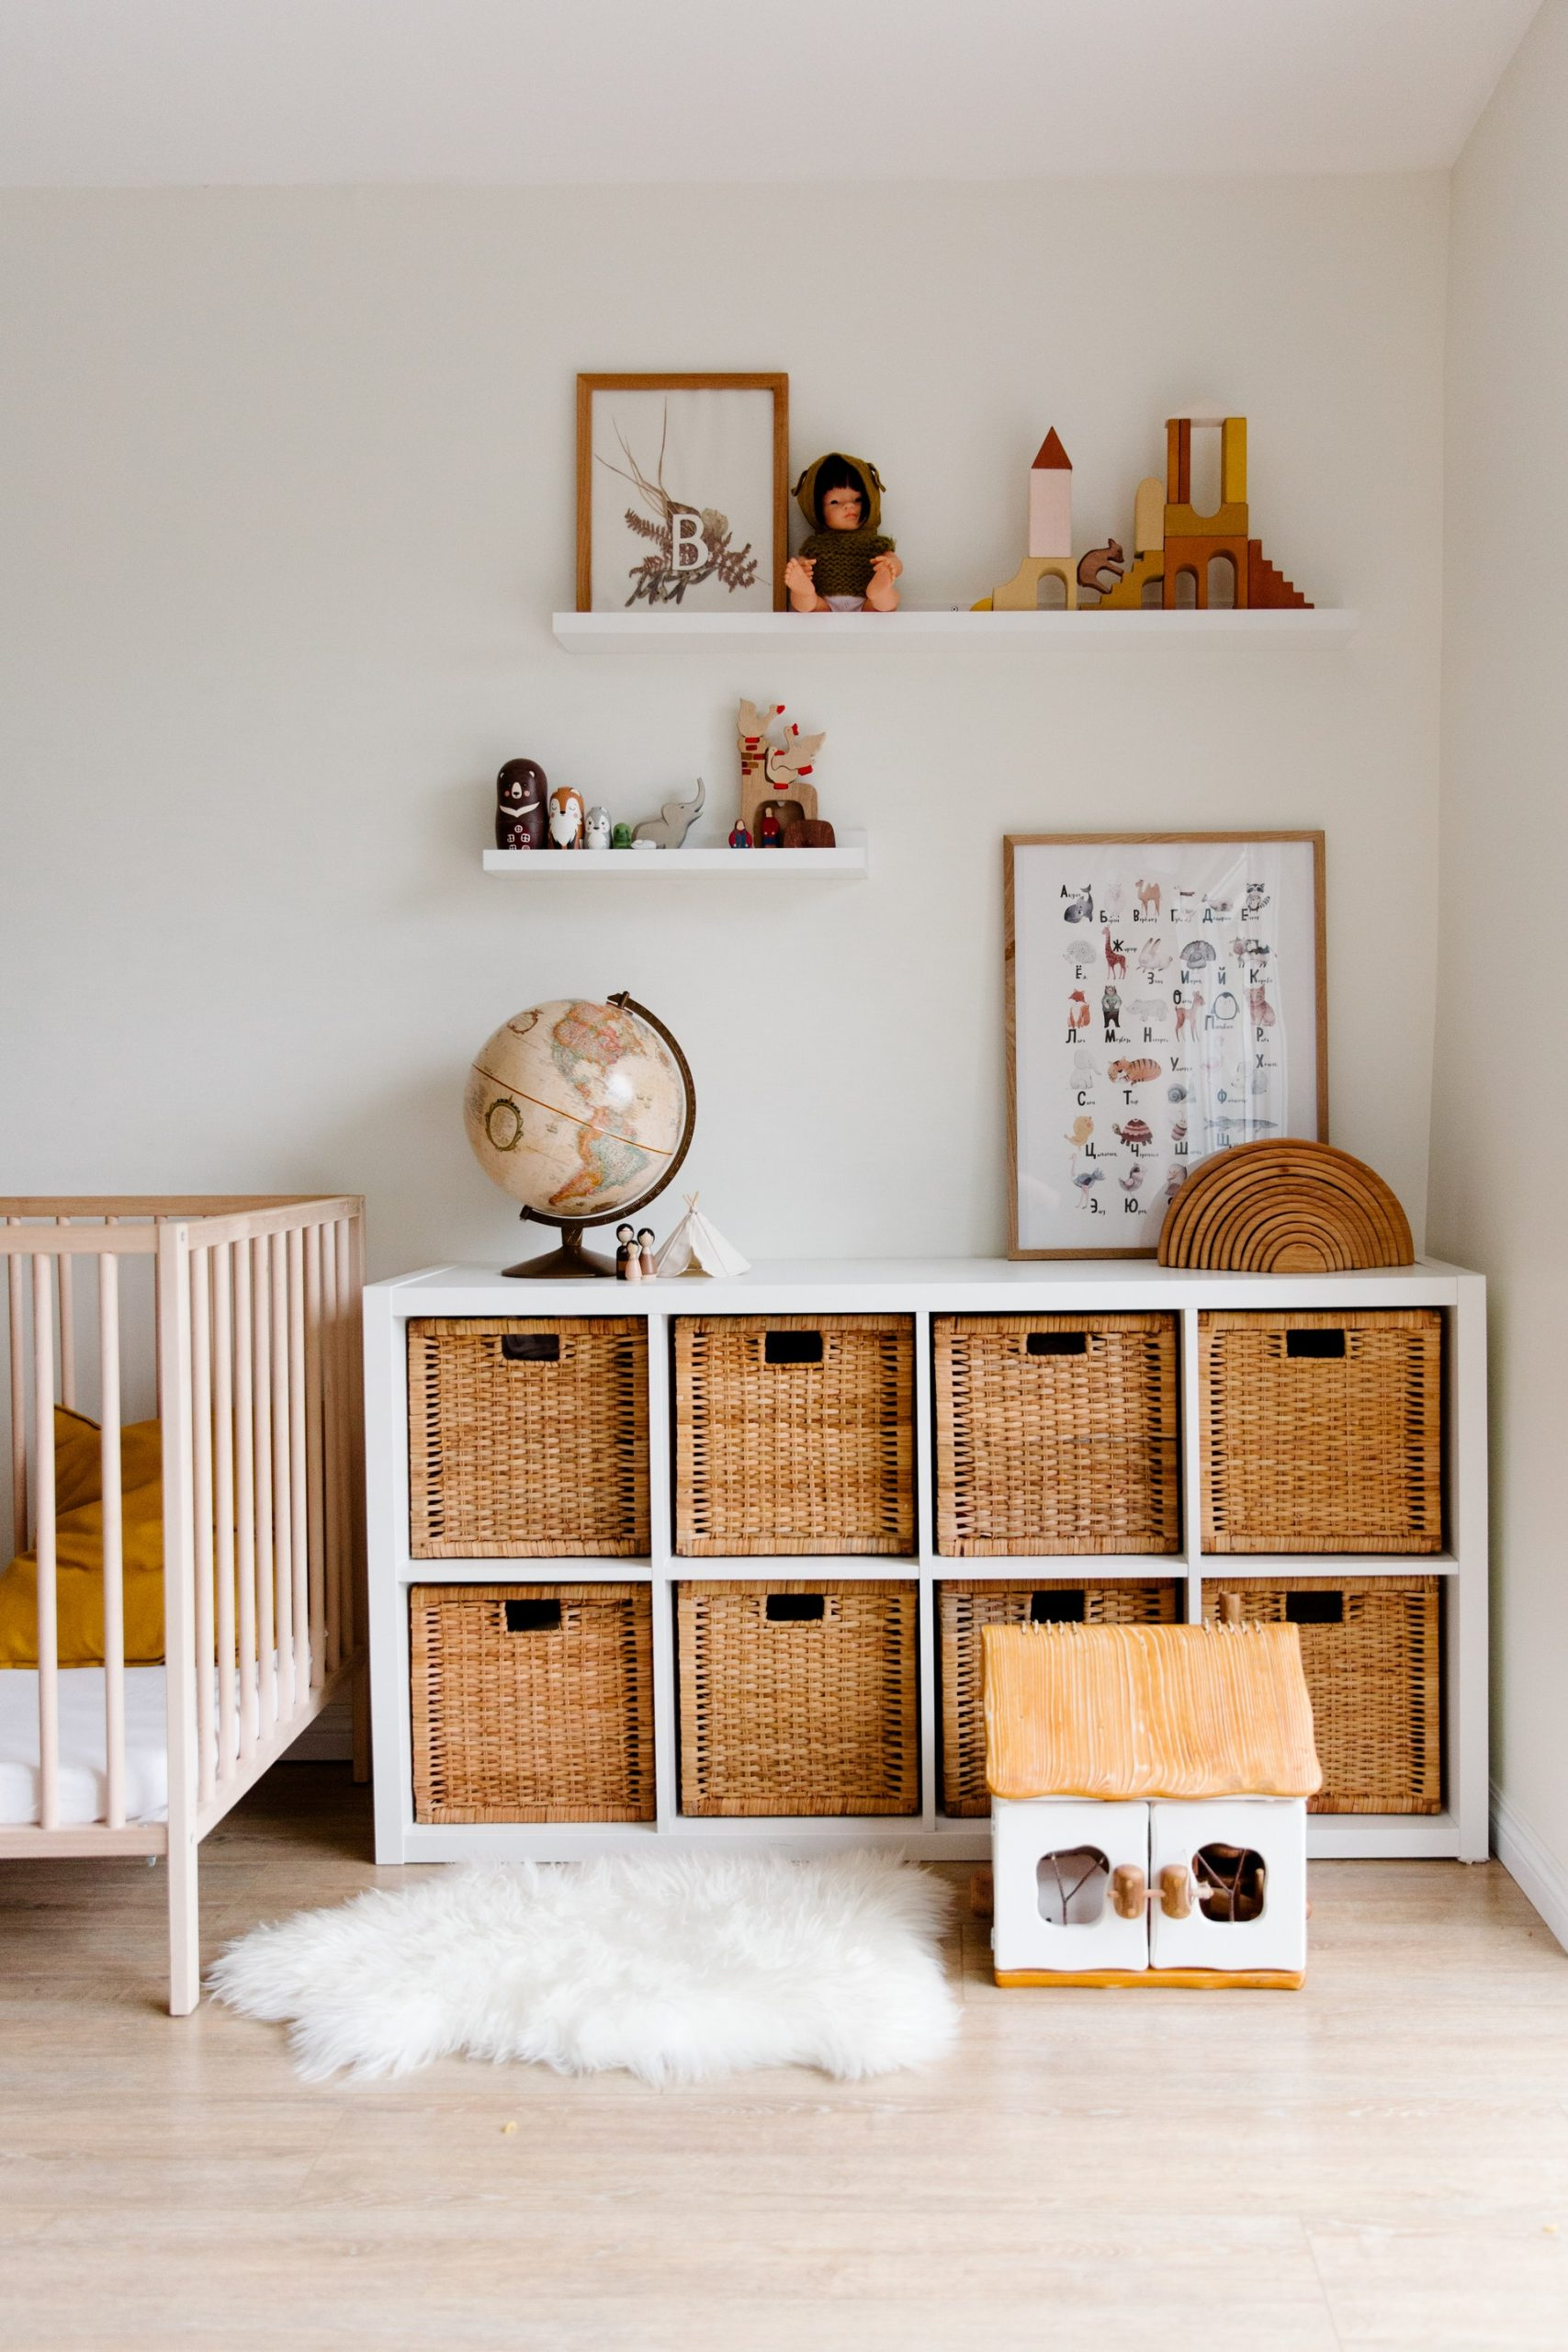 interior of children bedroom with wooden furniture and toys 3932930 scaled